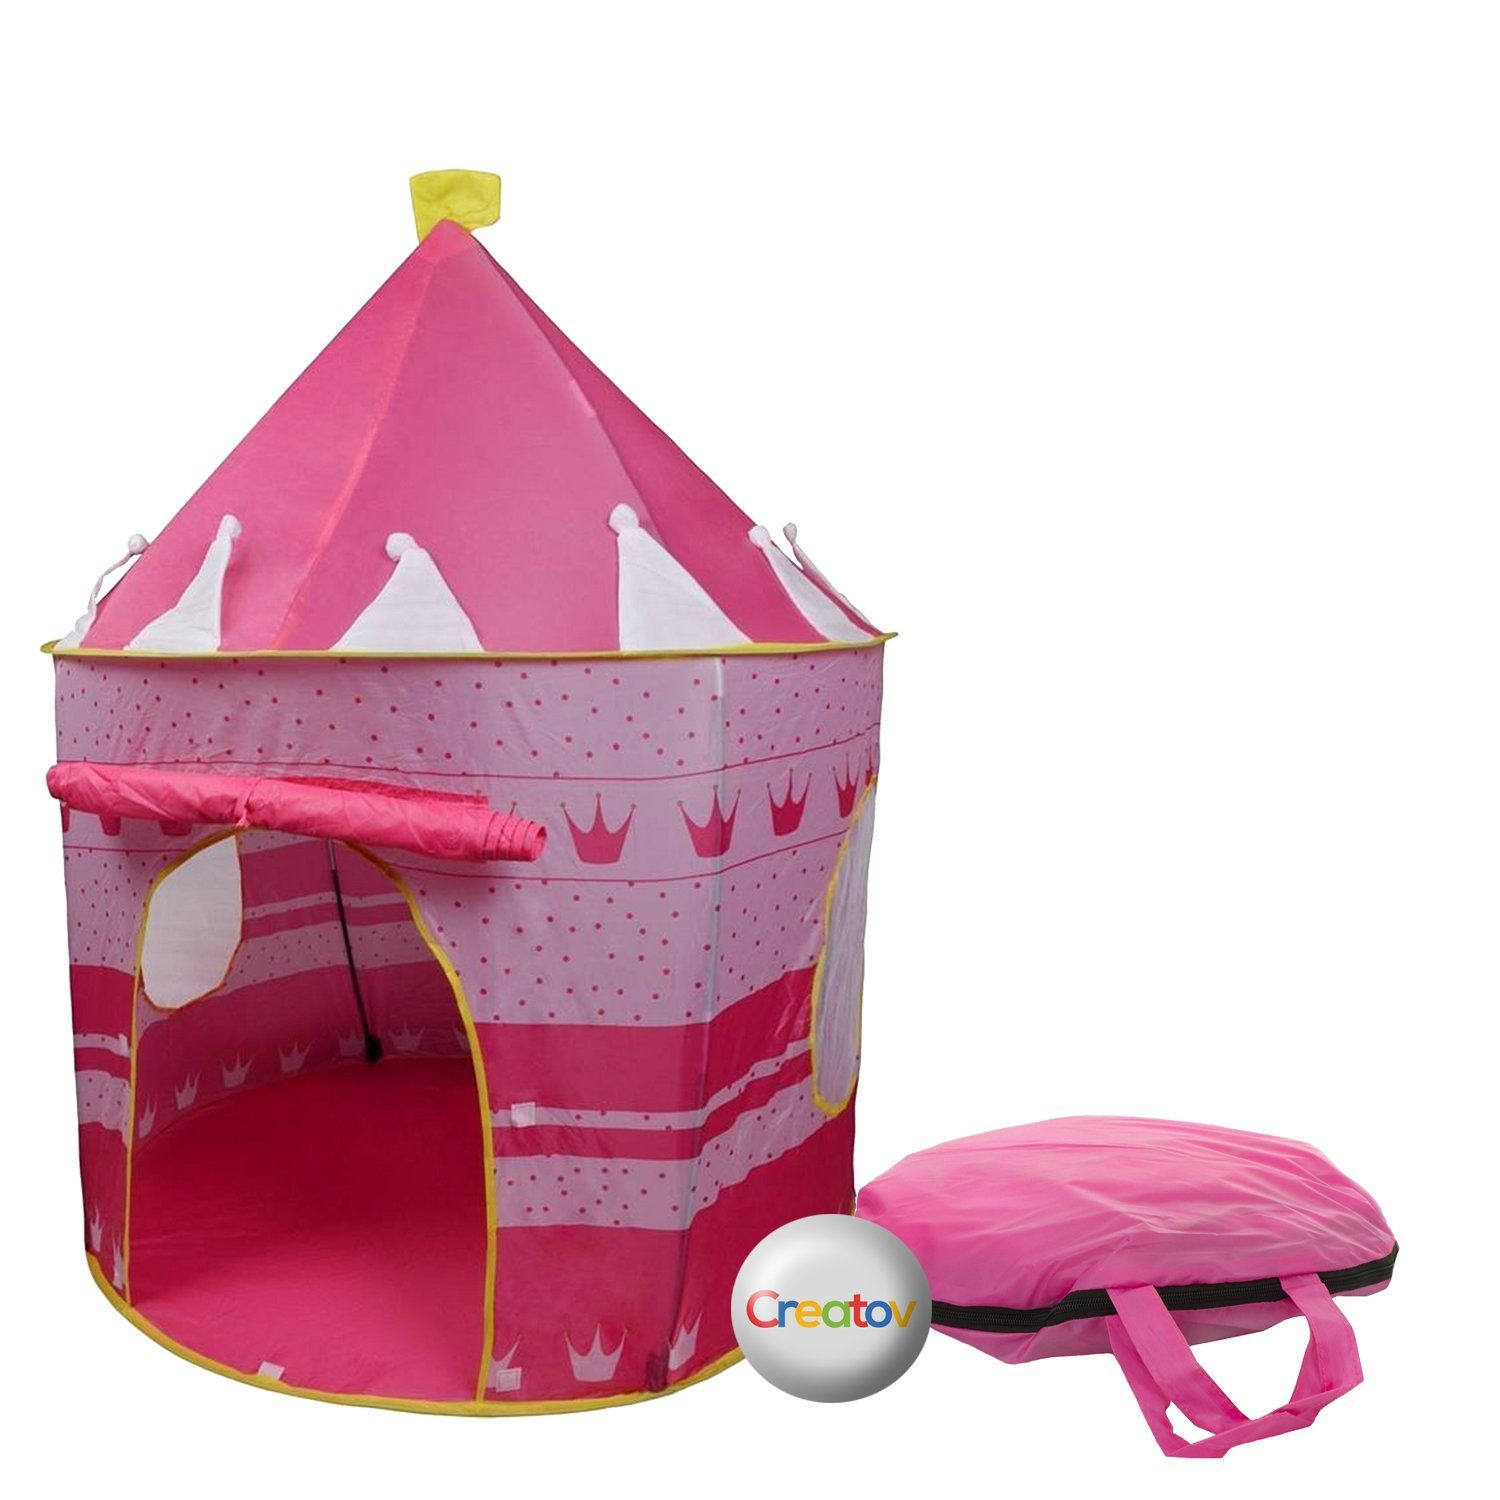 Children Play Tent Girls Pink Castle for Indoor/Outdoor Use With Glow in the Dark Stars Foldable with Carry Case - Creatov. OUR PLAY TENTS ARE 100% SAFE FOR ...  sc 1 st  Pinterest & Children Play Tent Girls Pink Castle for Indoor/Outdoor Use With ...